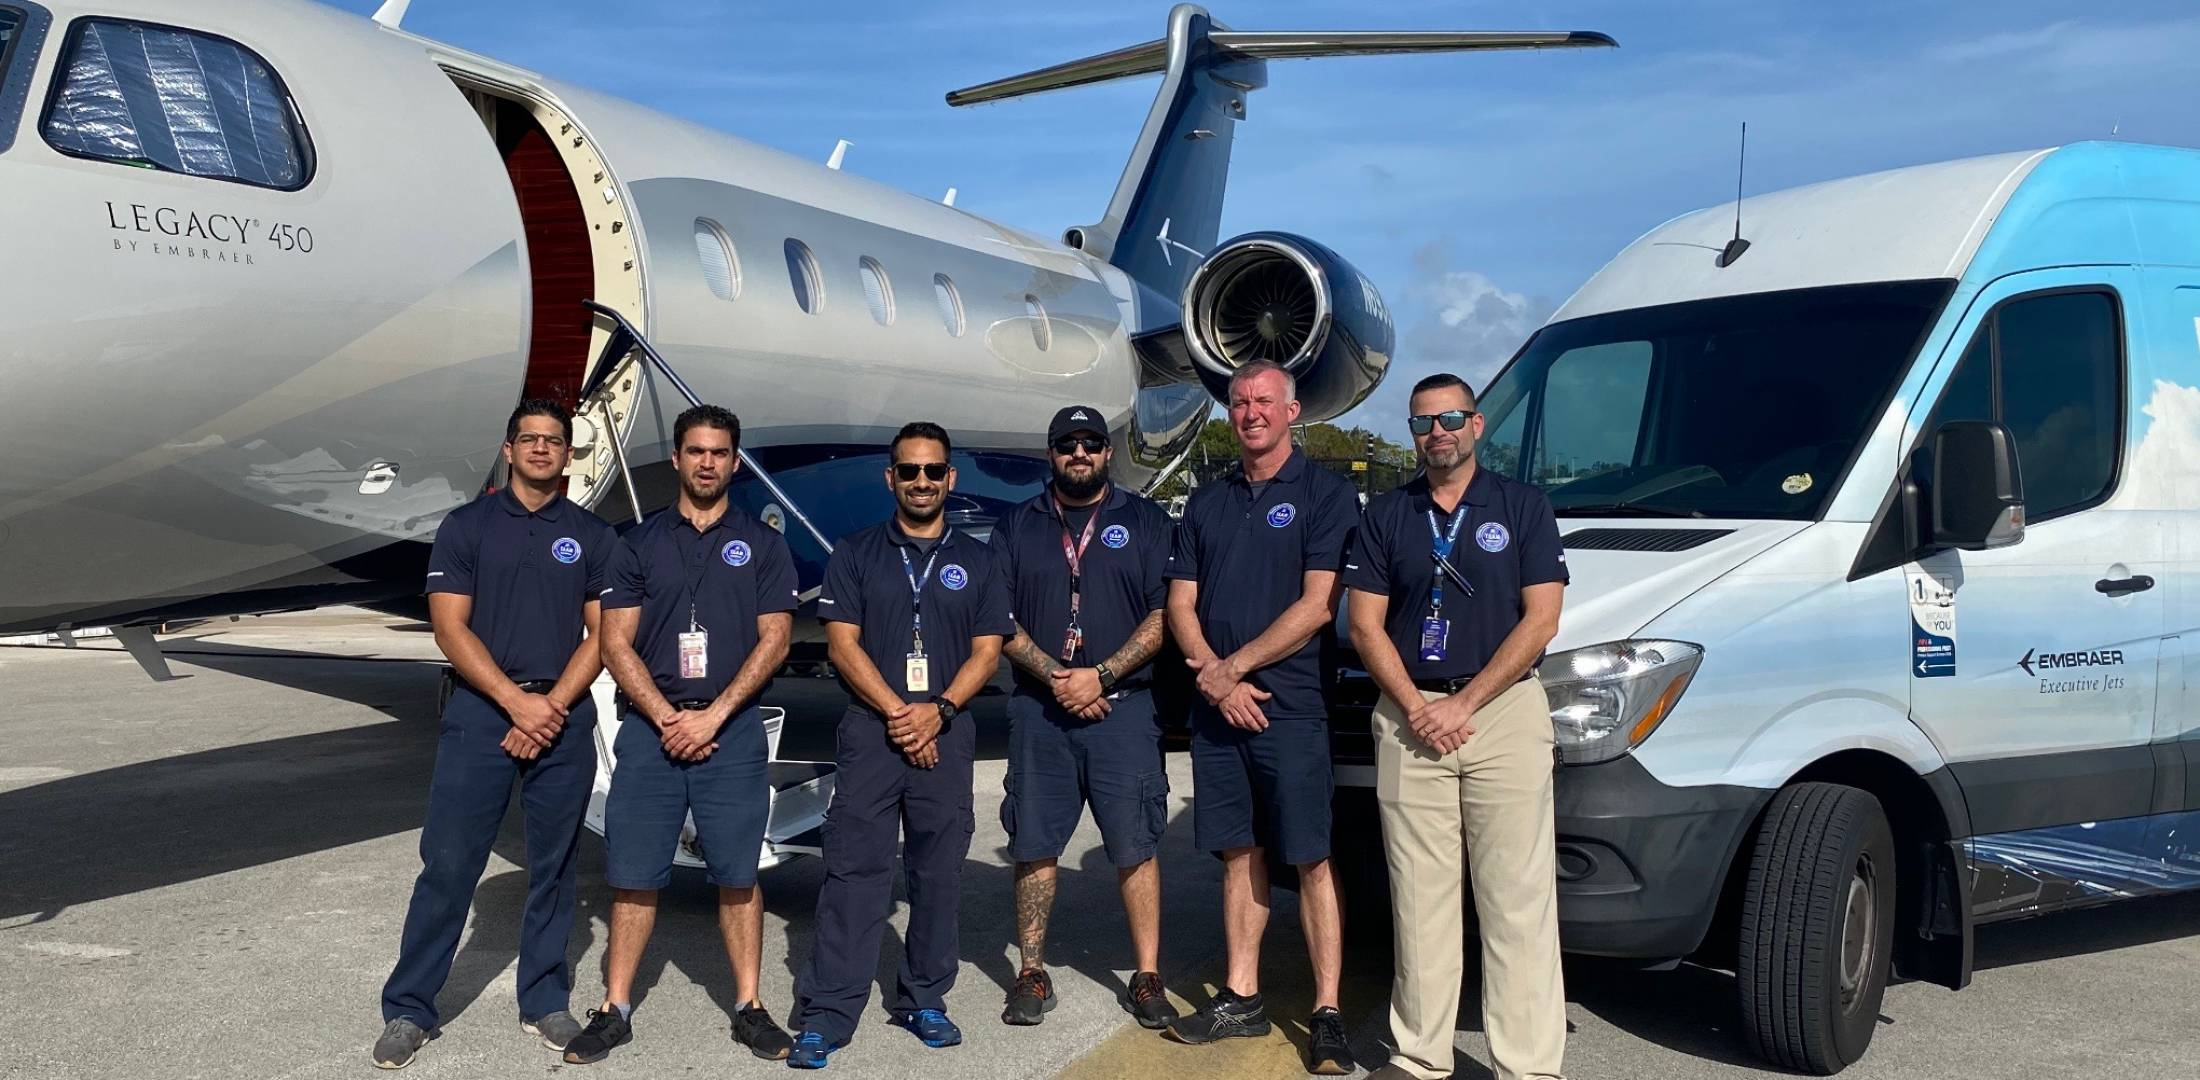 TEAM workers on ramp with plane